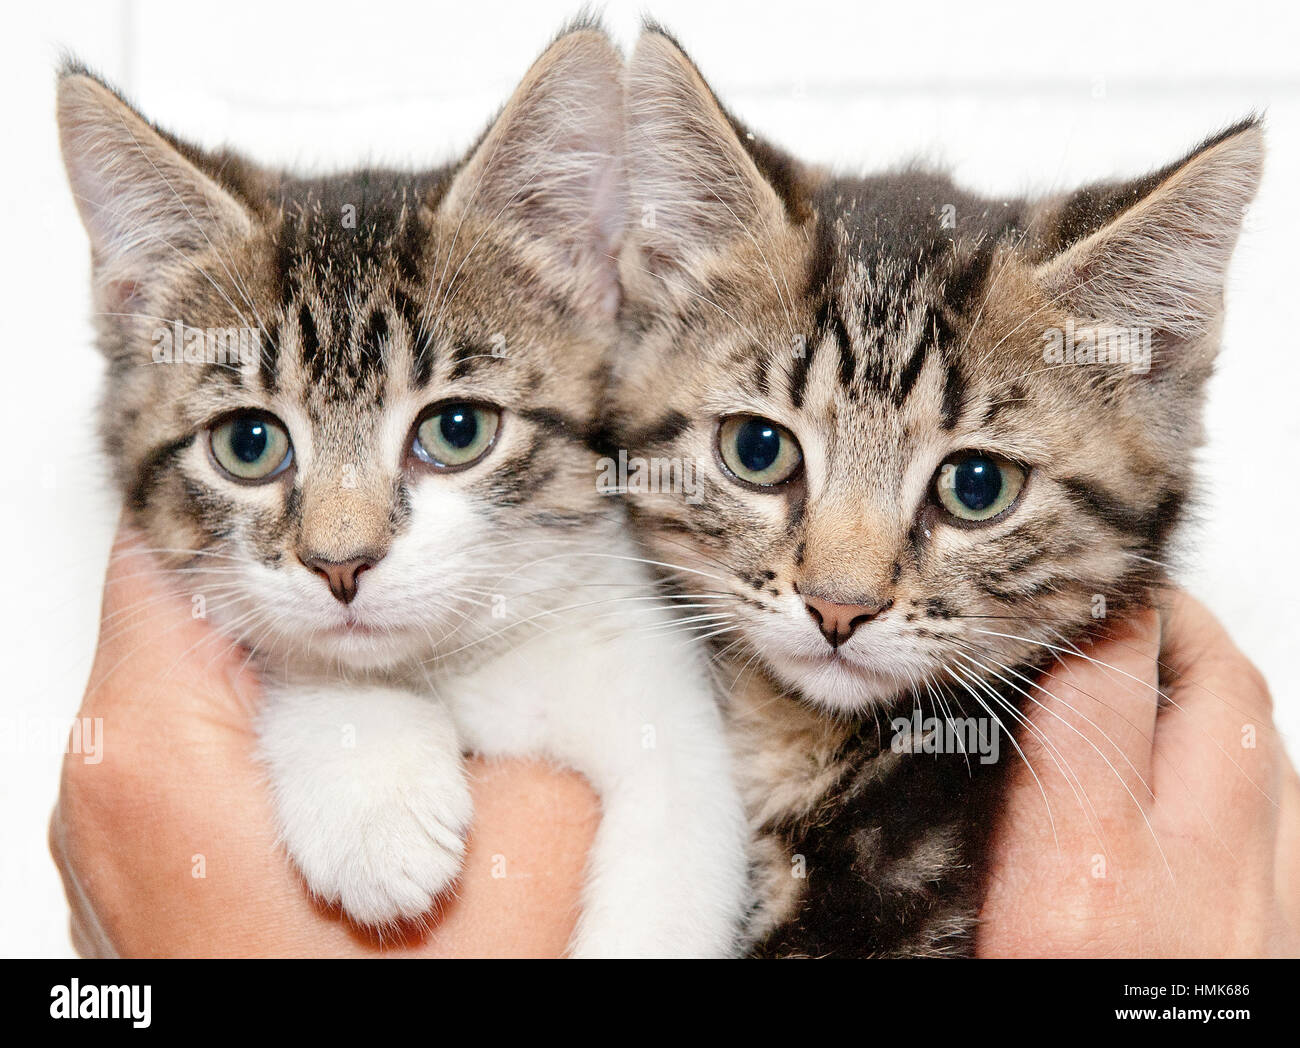 Two adorable grey tiger kittens in someone's hands close up - Stock Image